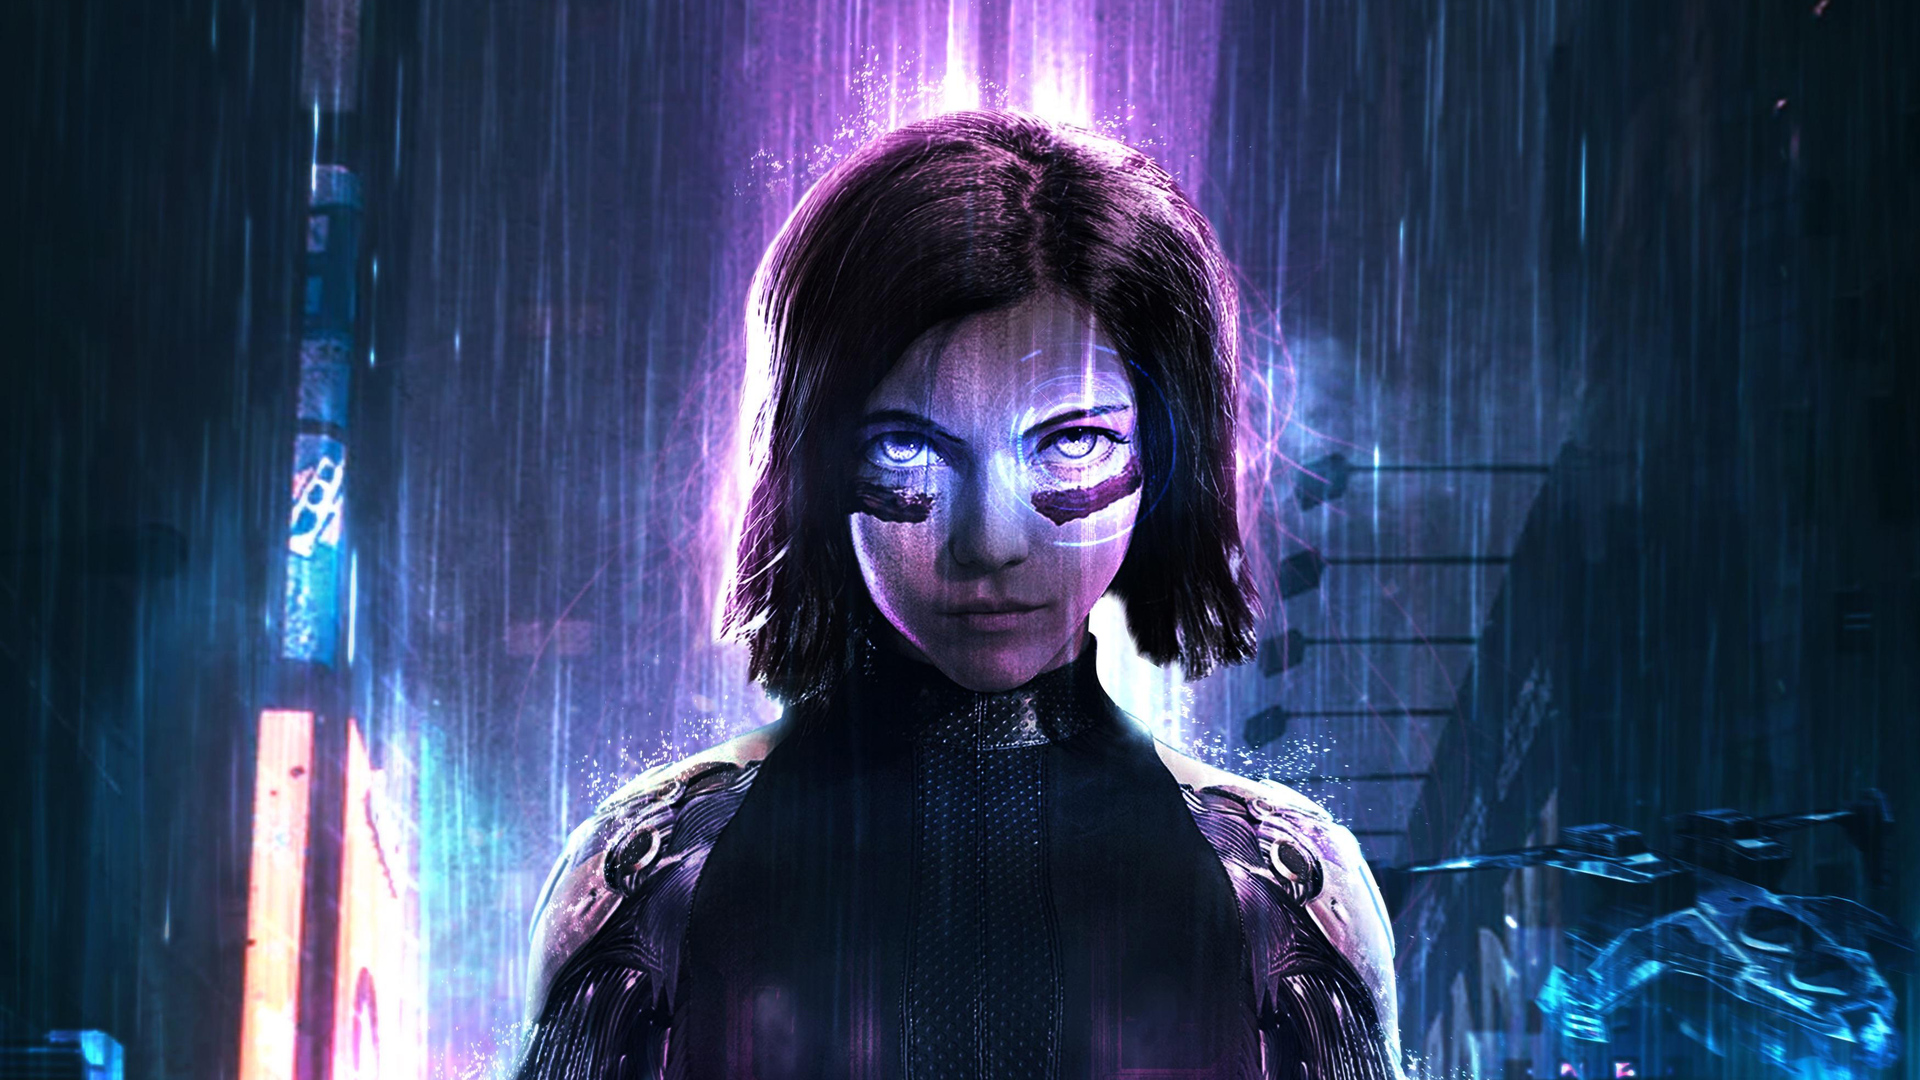 1920x1080 The Alita Battle Angel Laptop Full Hd 1080p Hd 4k